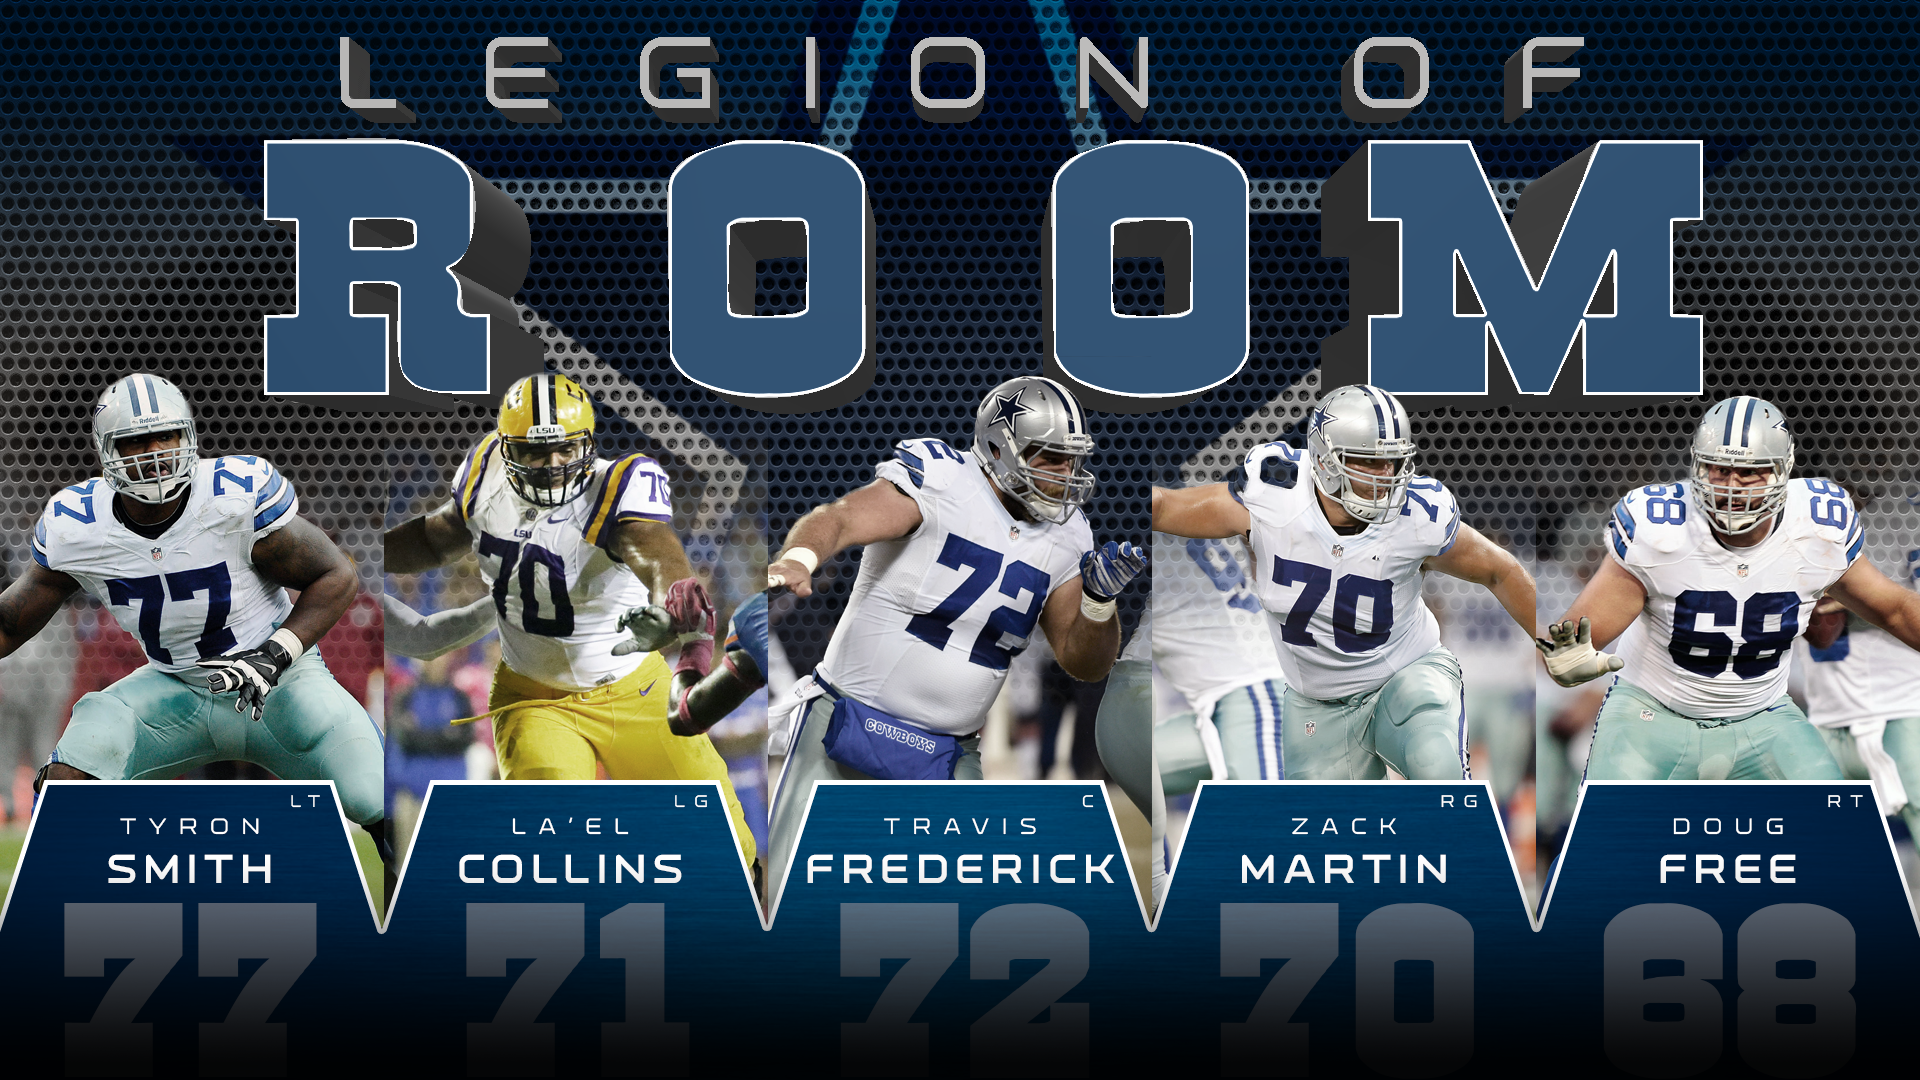 Great Wallpaper Football Cowboys - 7205582d510d79eb166b9246fe7cb931  Pic_45895 .png